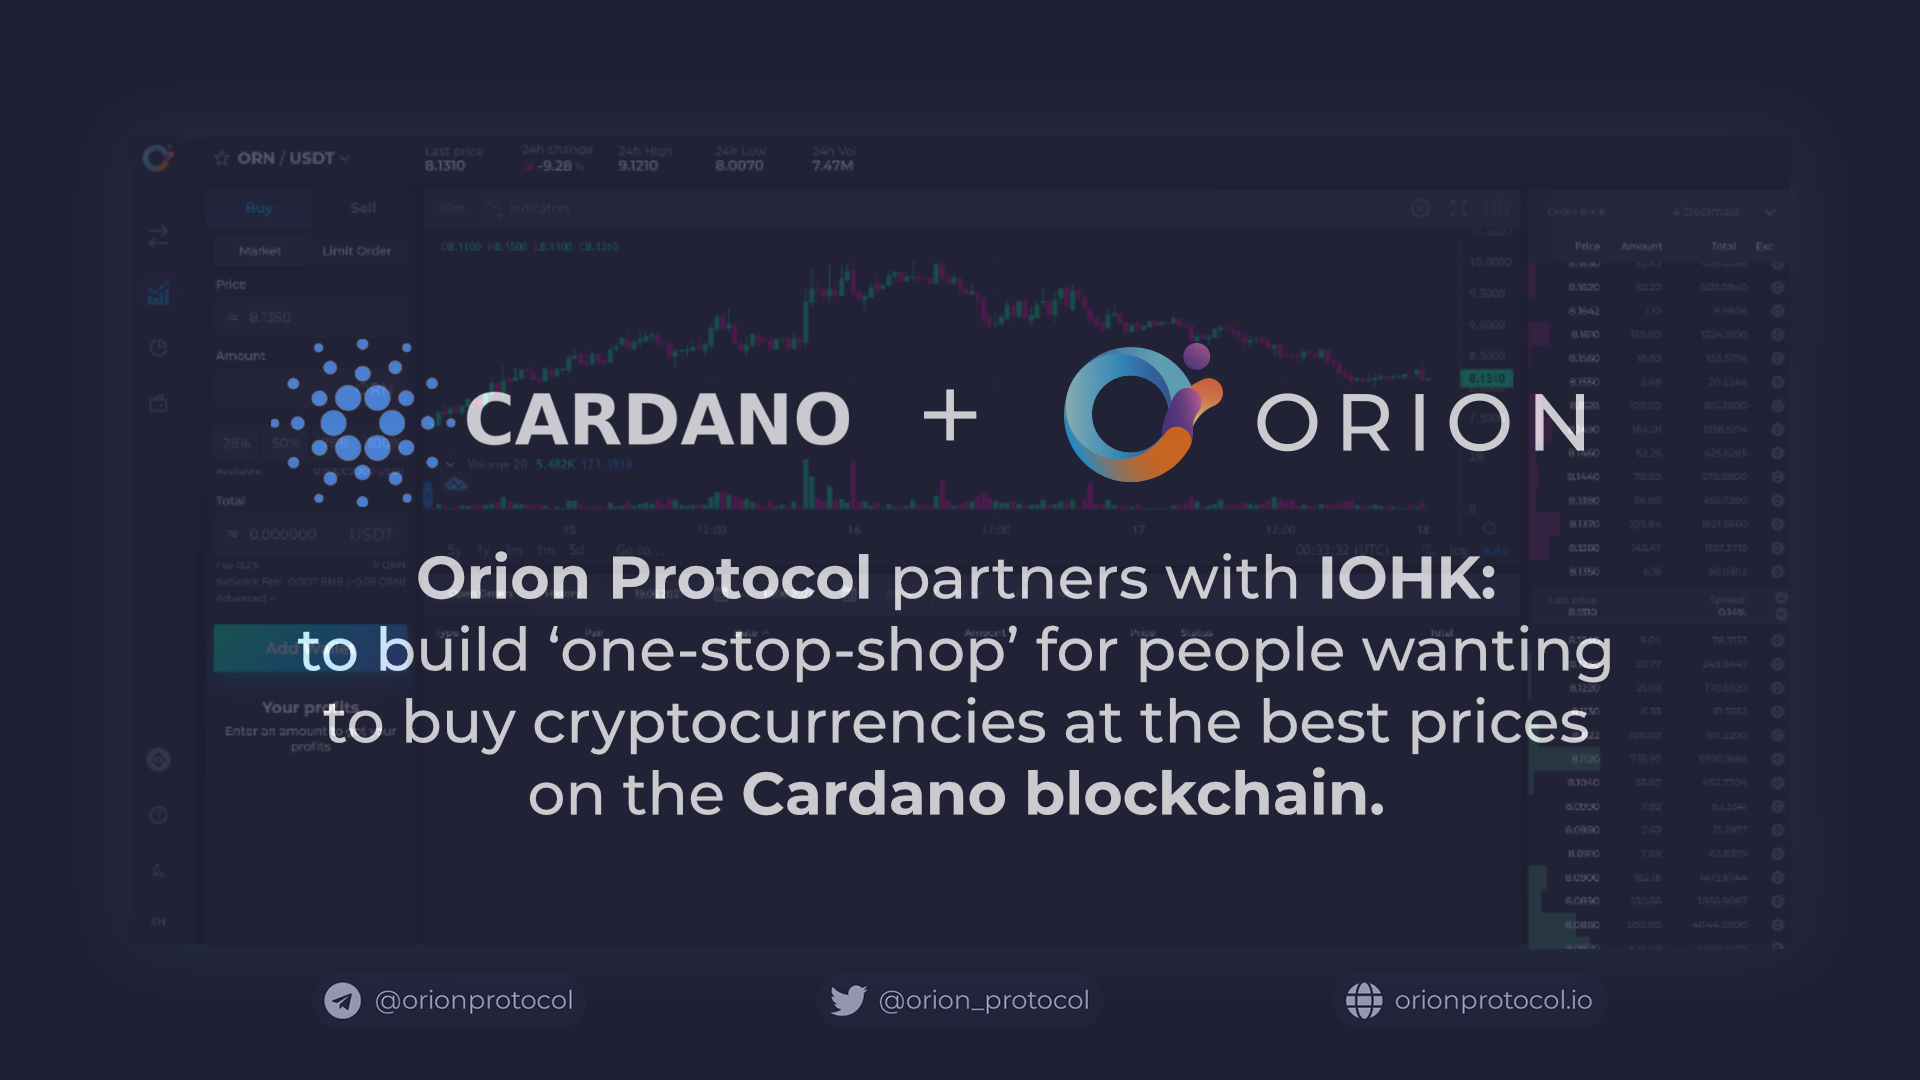 Orion to bring one-stop crypto marketplace to Cardano